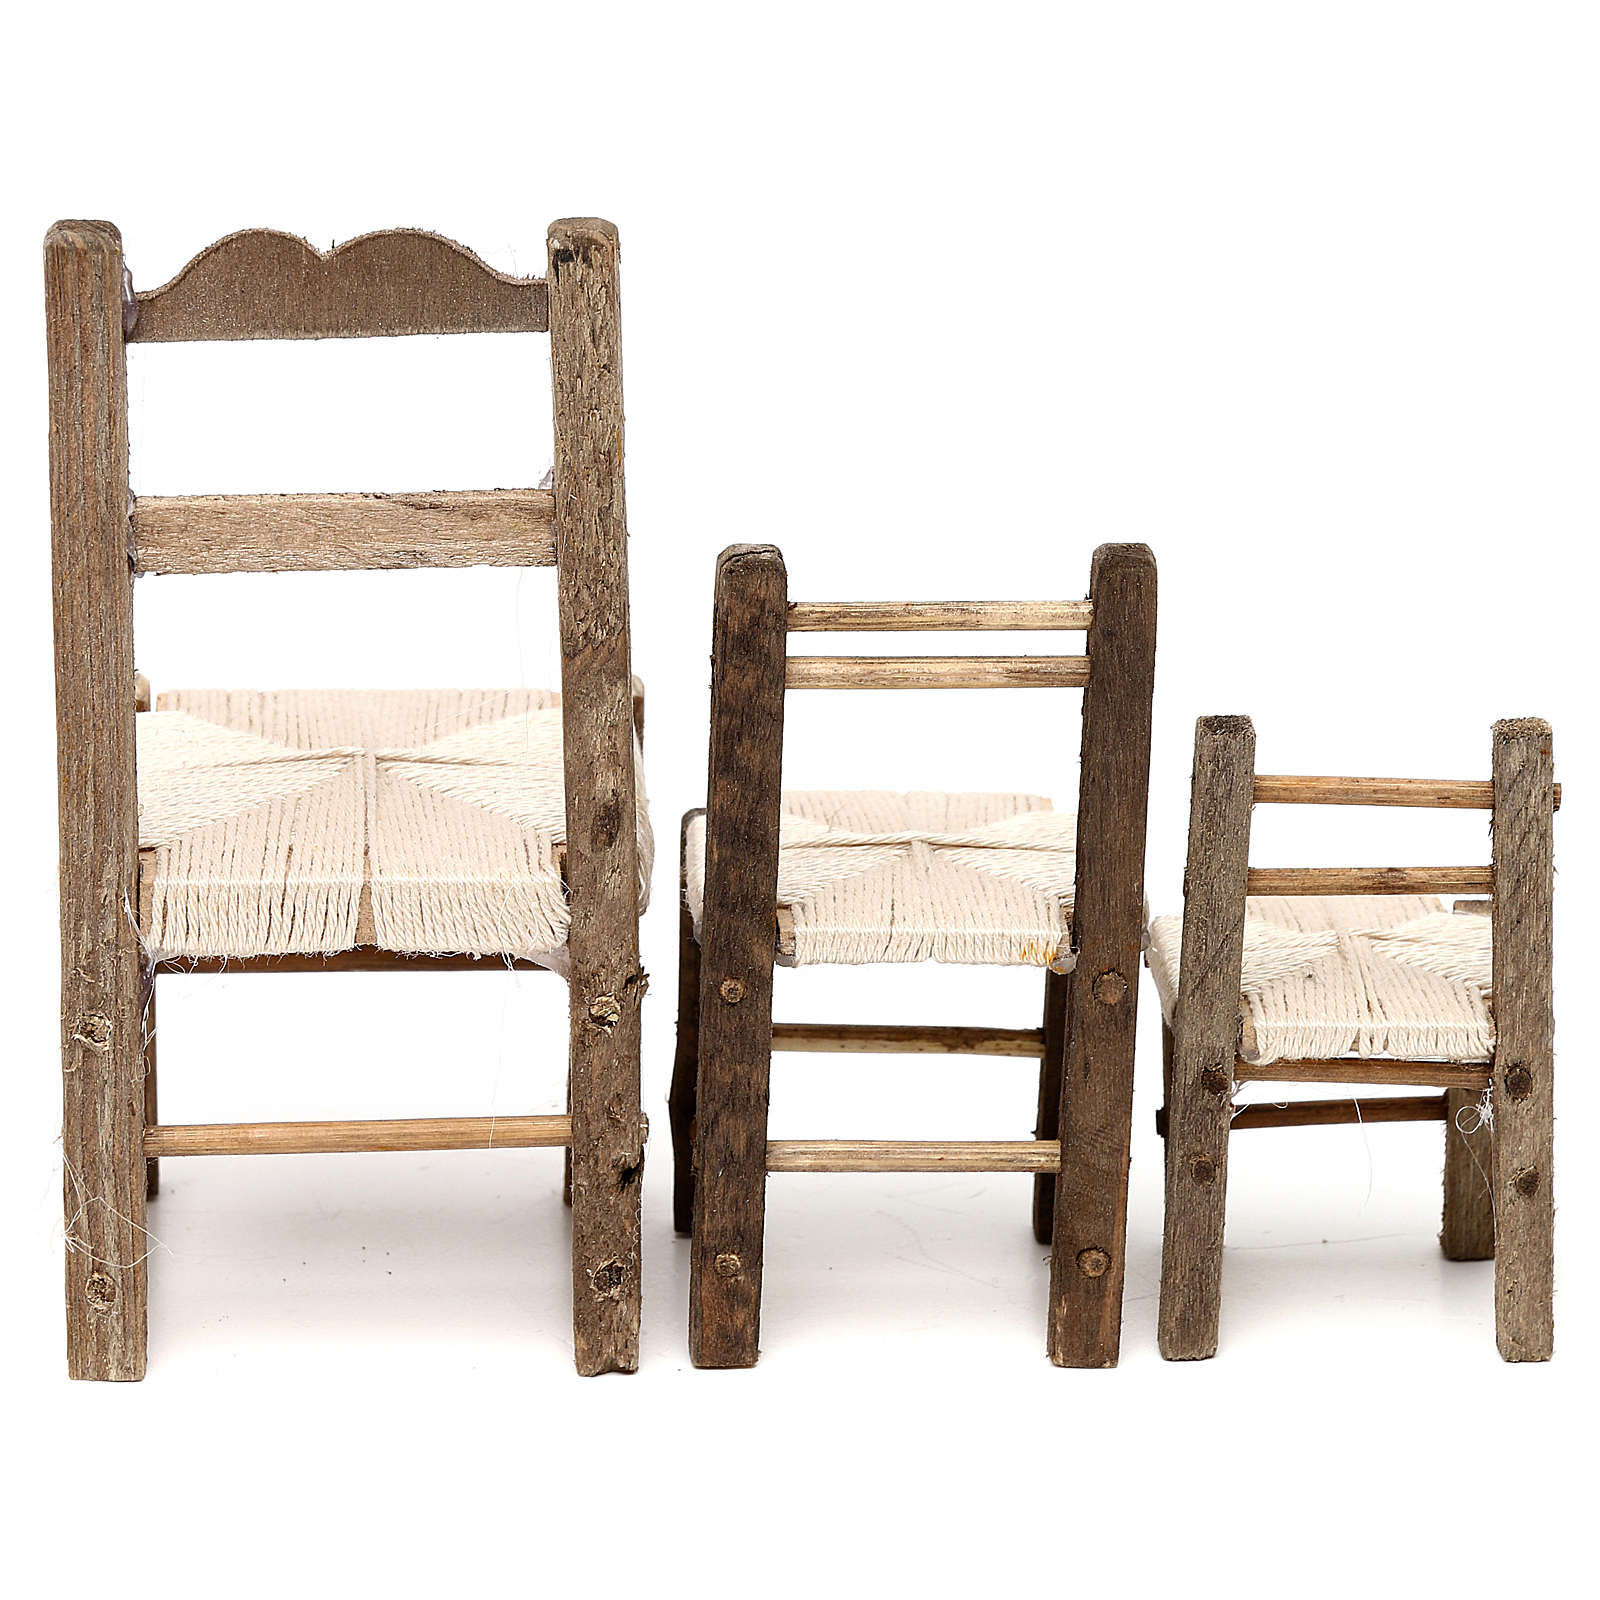 Set of 3 chairs for Neapolitan Nativity Scene 10/12/14 cm 4